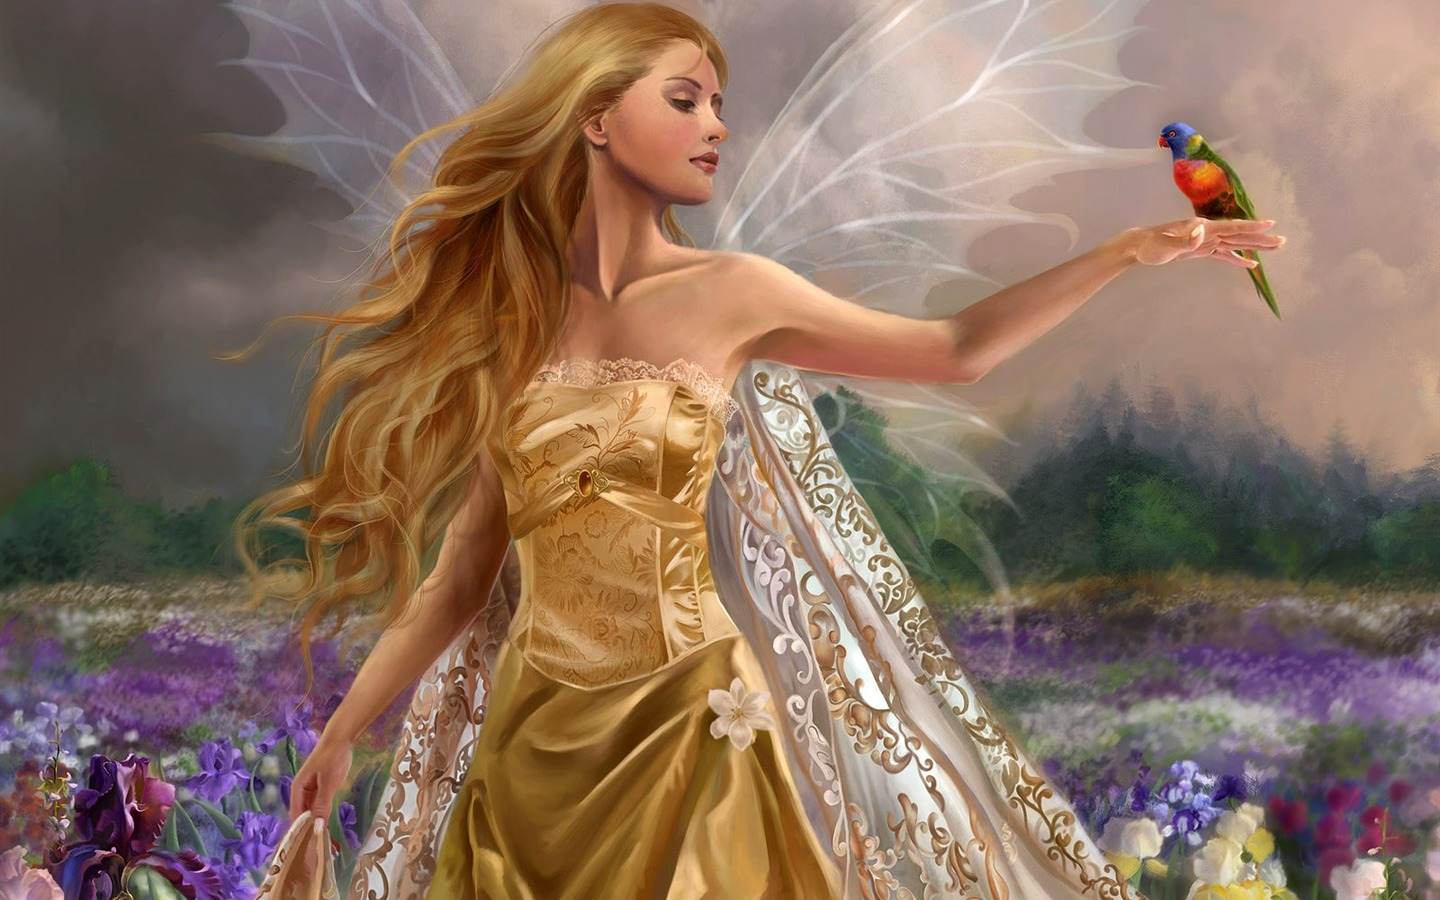 Beautiful Women Wallpaper Fantasy Illustrator 22 1440x900